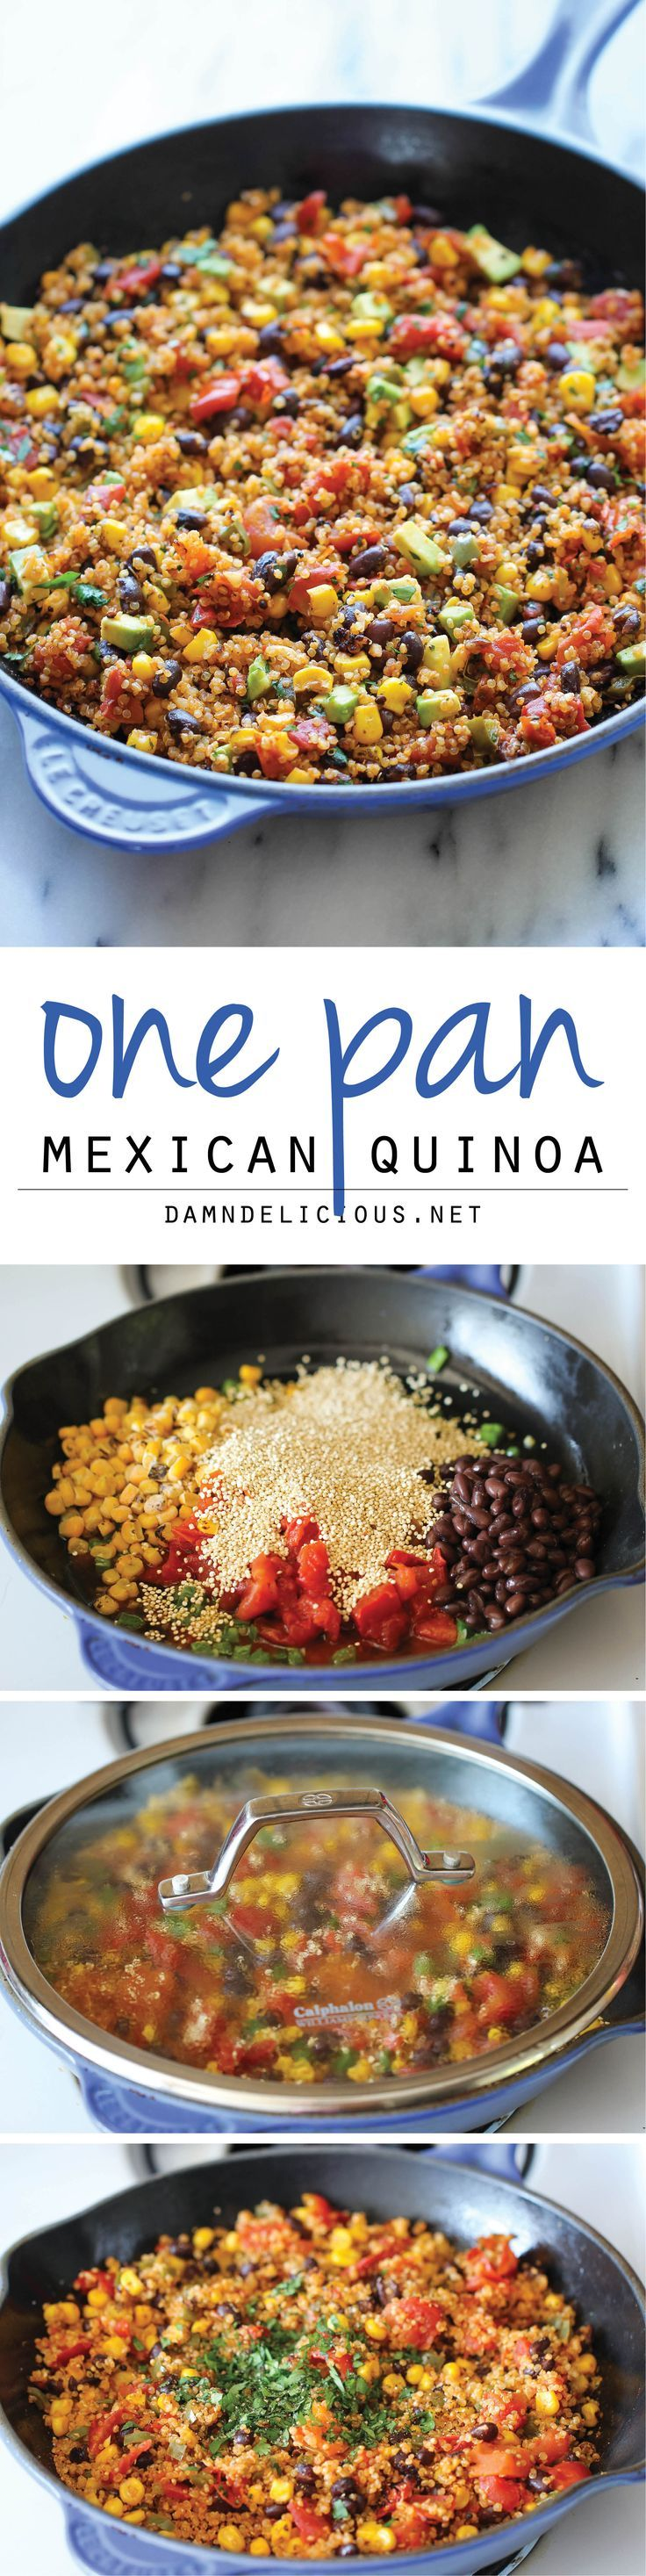 Clean Eating One Pan Mexican Quinoa Recipe plus 28 more of the most pinned Clean Eating recipes.